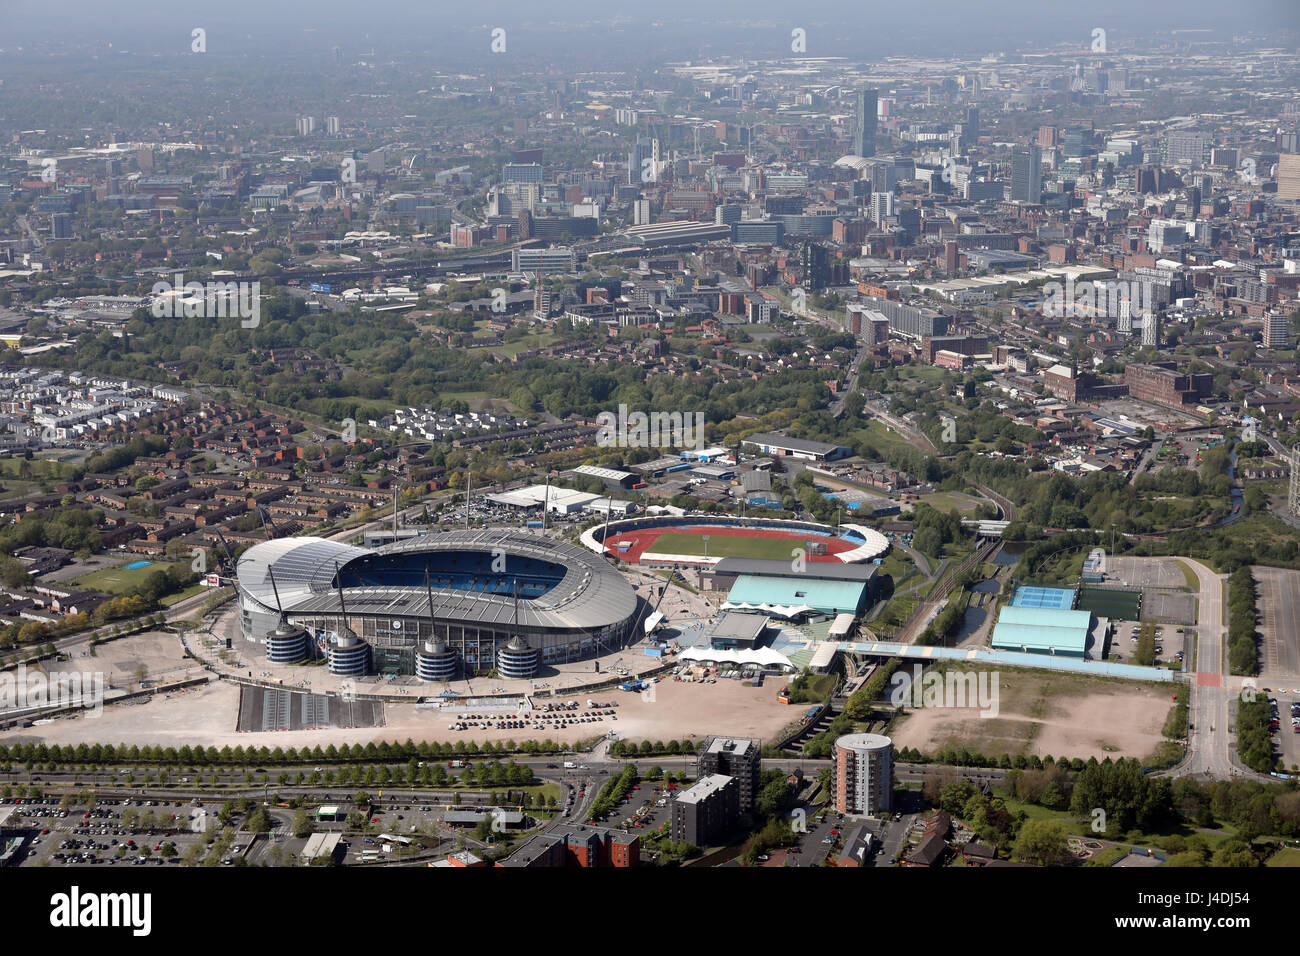 aerial view of Manchester City FC Etihad Stadium with city centre in background - Stock Image